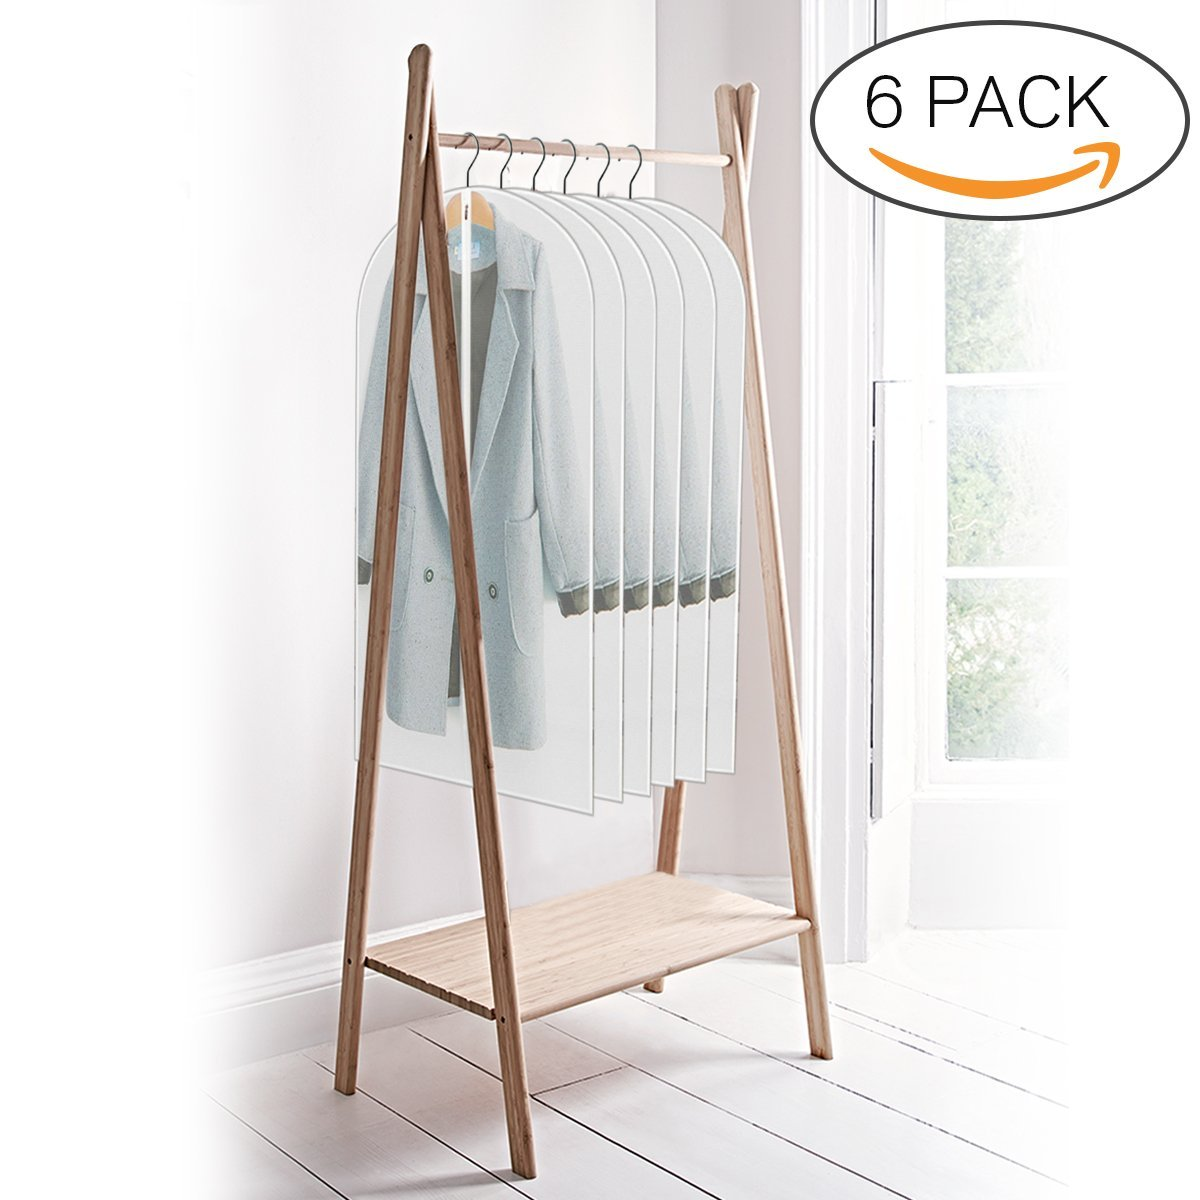 ELEGLIFE Garment Bags (6-Pack): 24''x48'' for Coats, Dresses, Suits, Gowns – Clear Storage Bags, Breathable Protective Cover for Moths, Dust and Moisture, Heavy Duty Zipper, Hanging Travel Bags